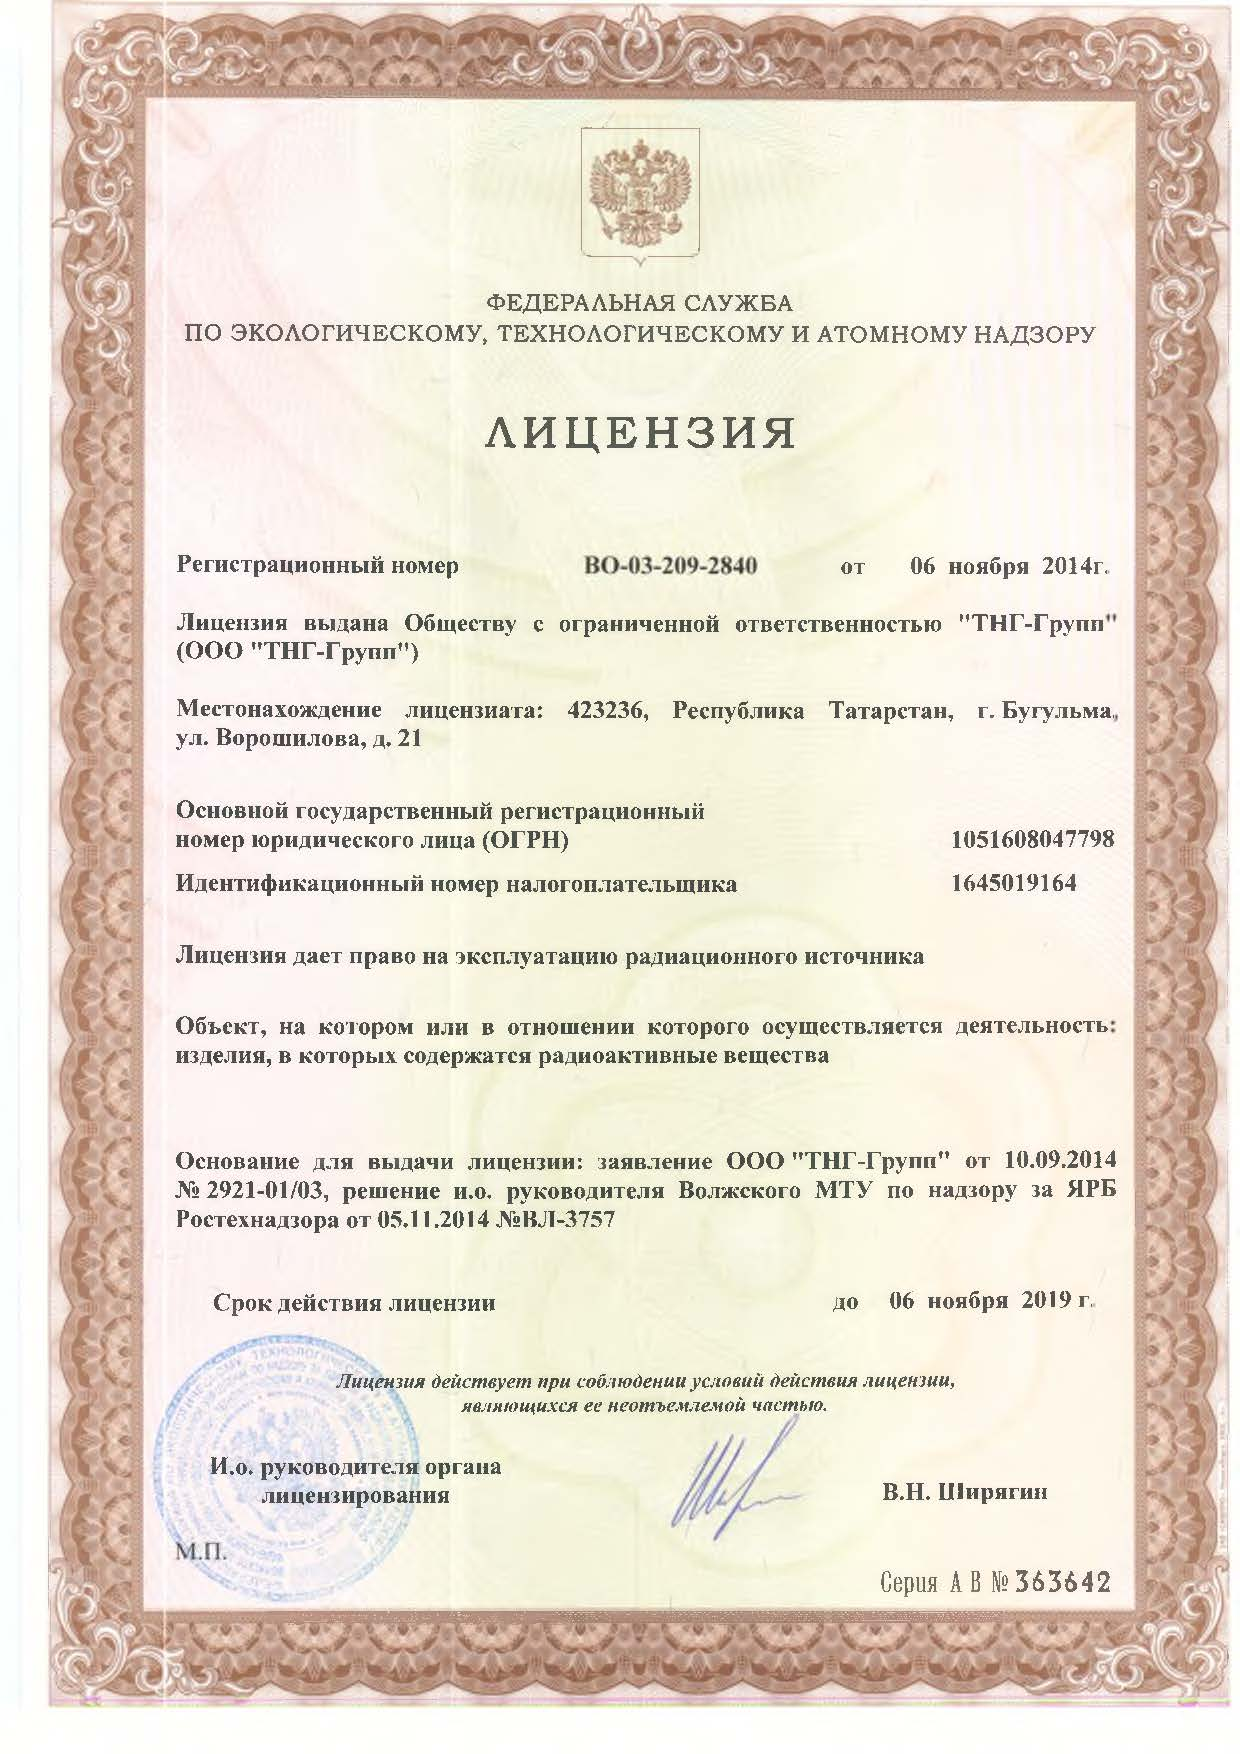 License to operate a radioactivity source